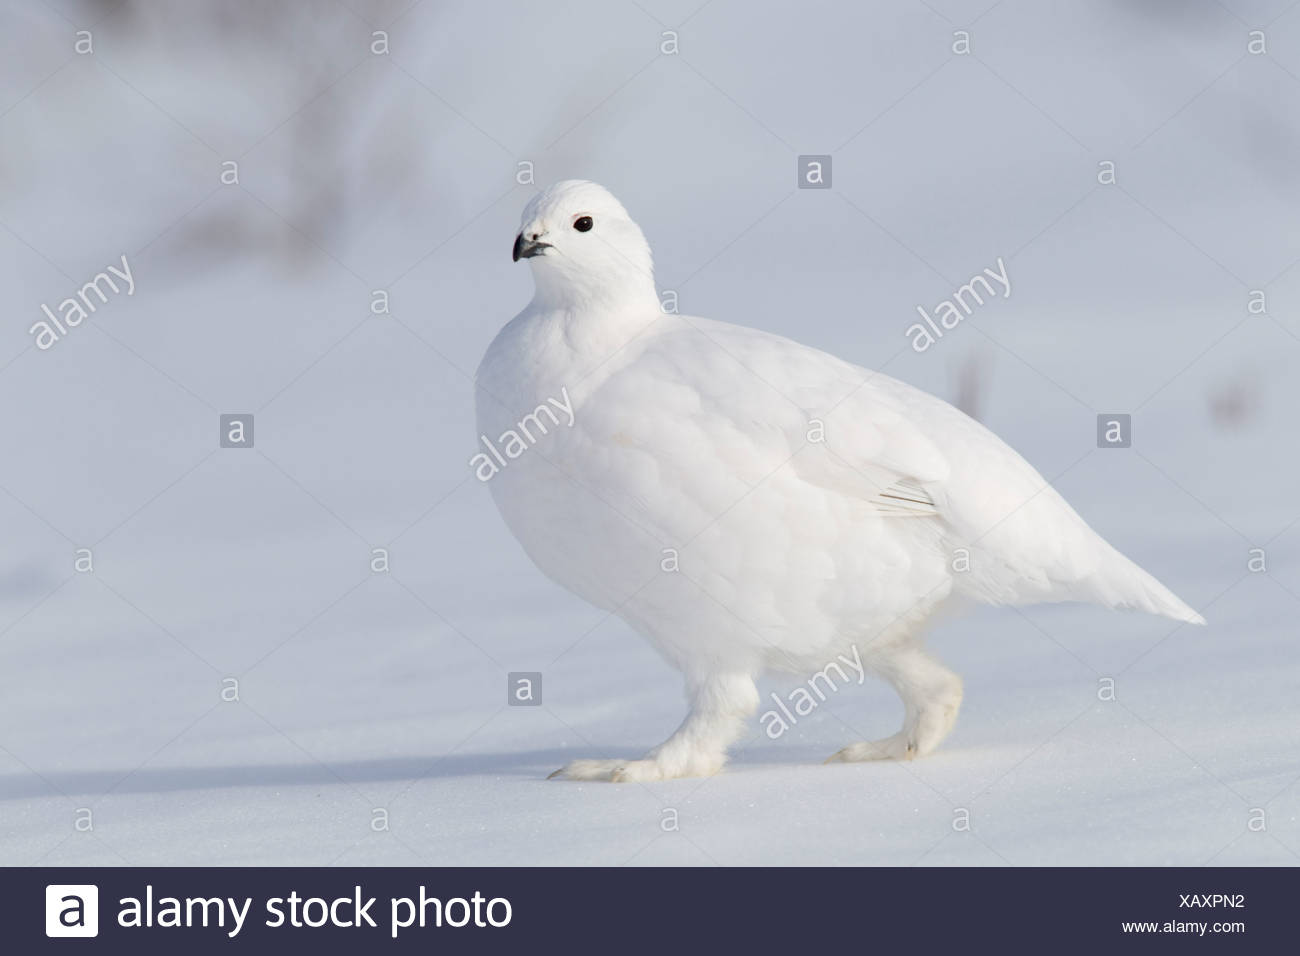 Willow Ptarmigan in white winter plumage walking on hard packed snow, Chugach Mountains, Southcentral Alaska, Winter - Stock Image